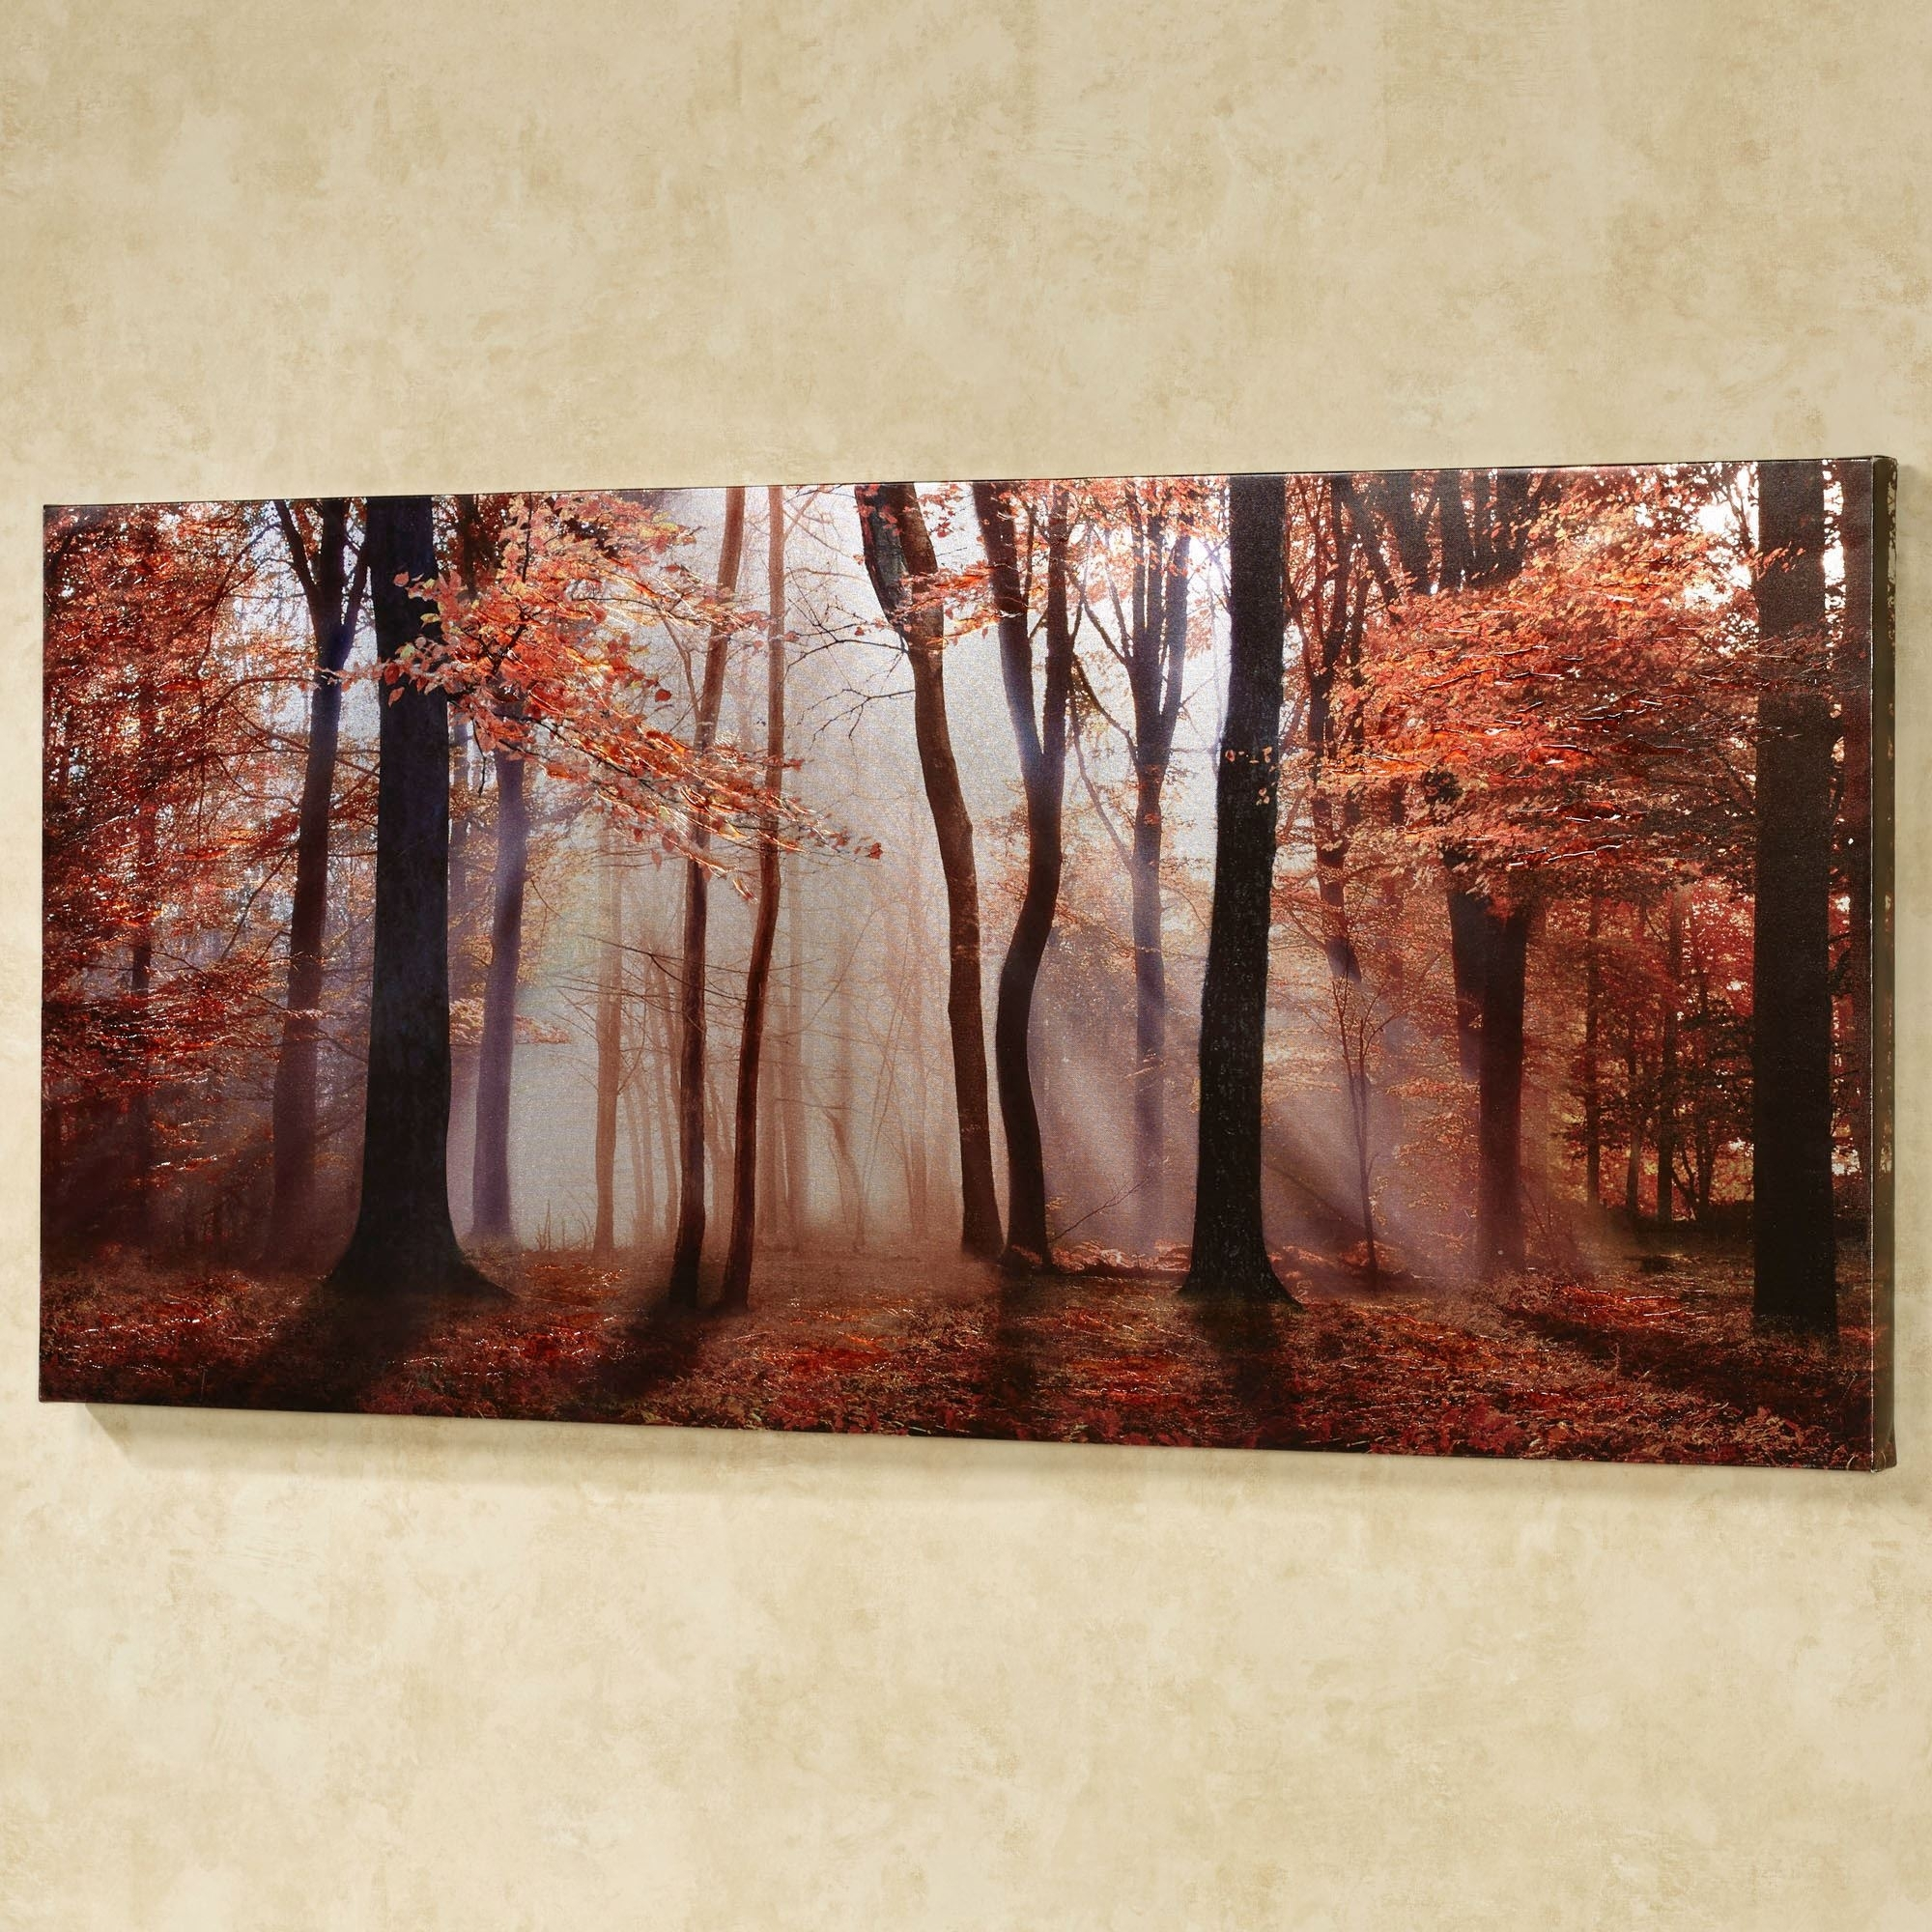 Autumns Allure Giclee Canvas Wall Art Intended For Best And Newest Wall Canvas Art (View 3 of 15)